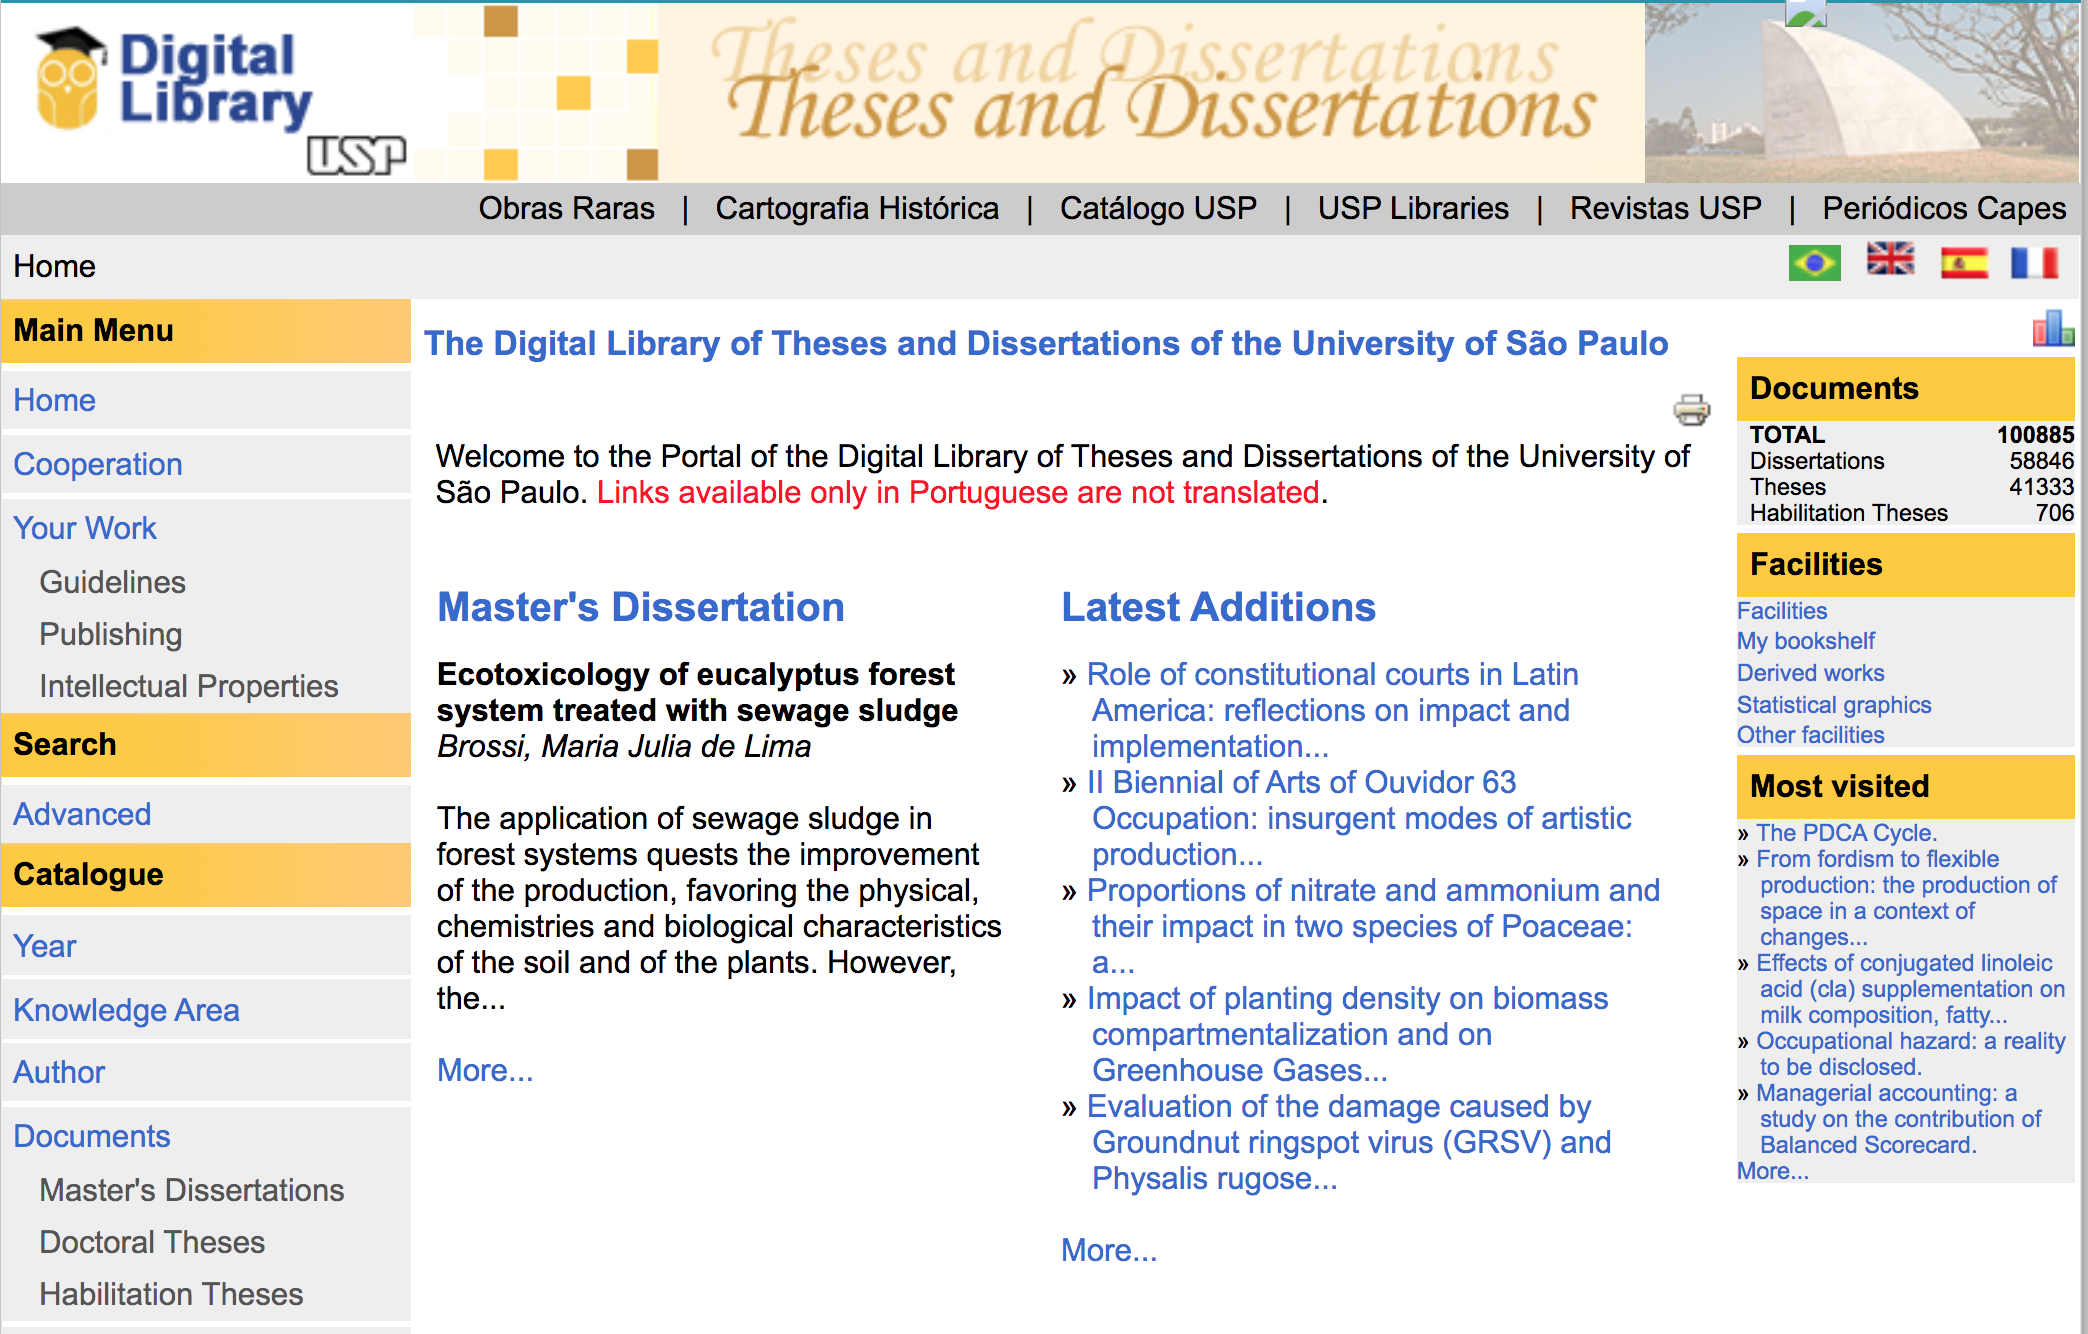 Portal of the Digital Library of Theses and Dissertations